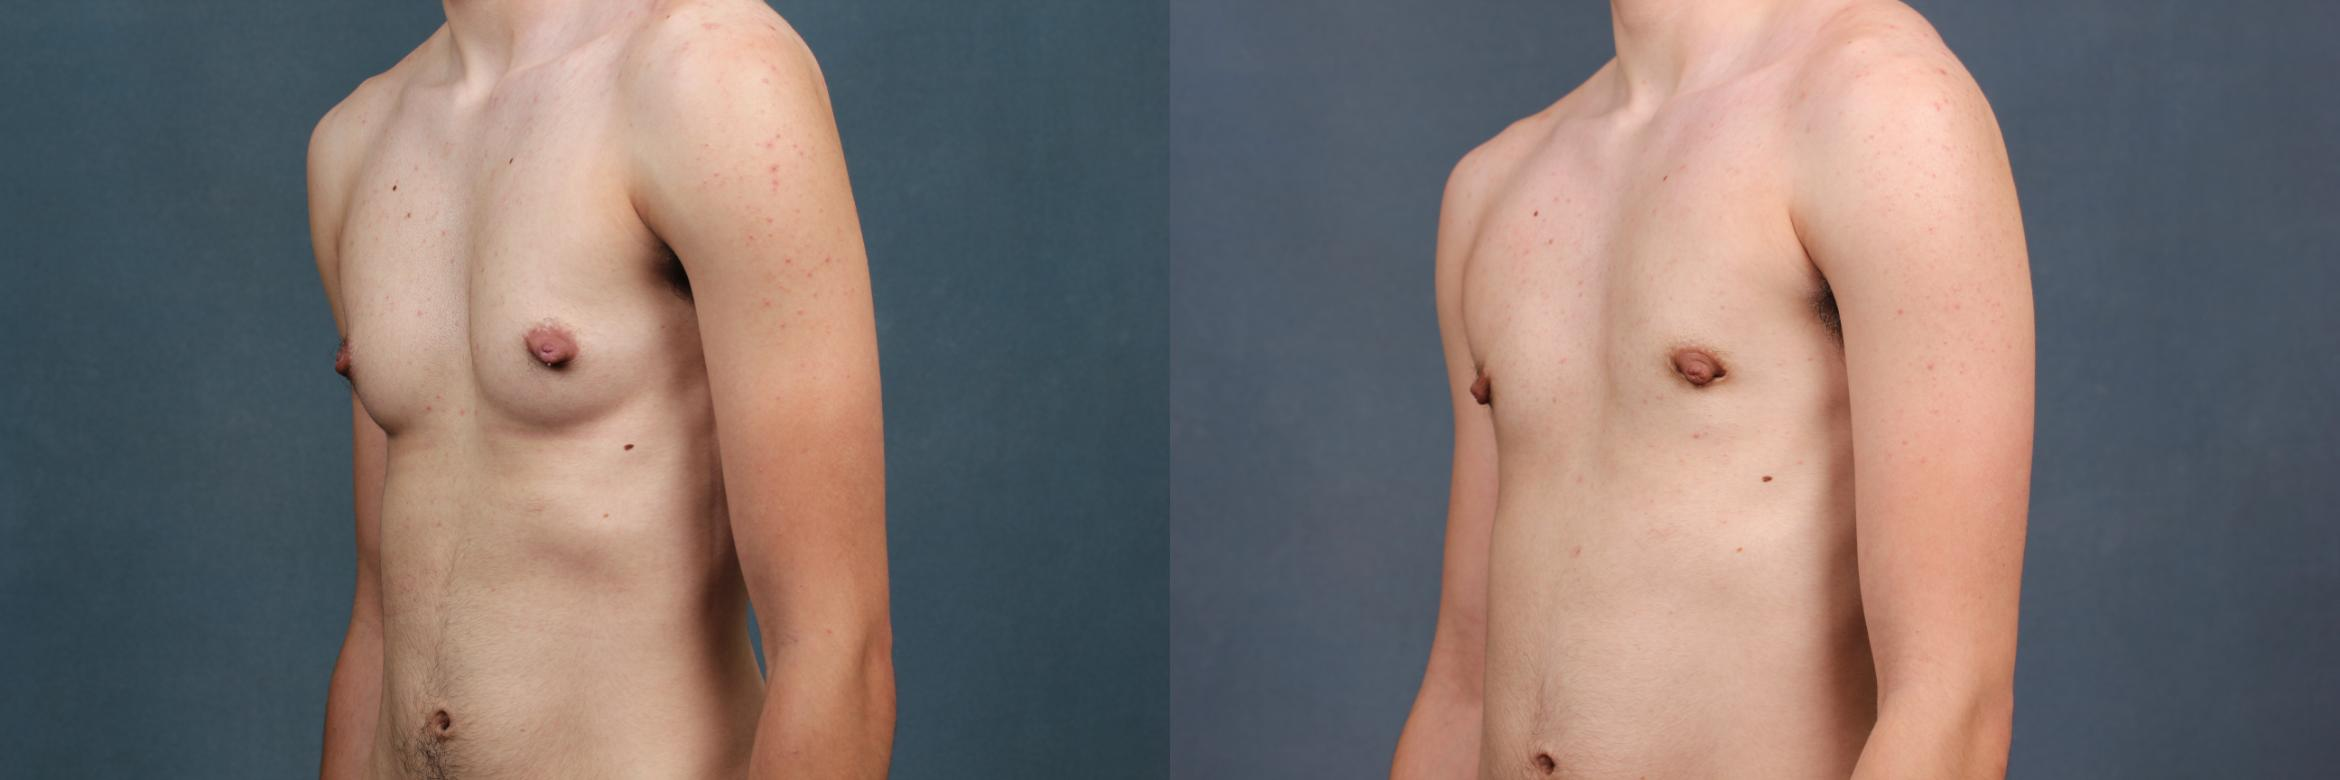 Top Surgery Case 734 Before & After Left Oblique | Louisville & Lexington, KY | CaloAesthetics® Plastic Surgery Center